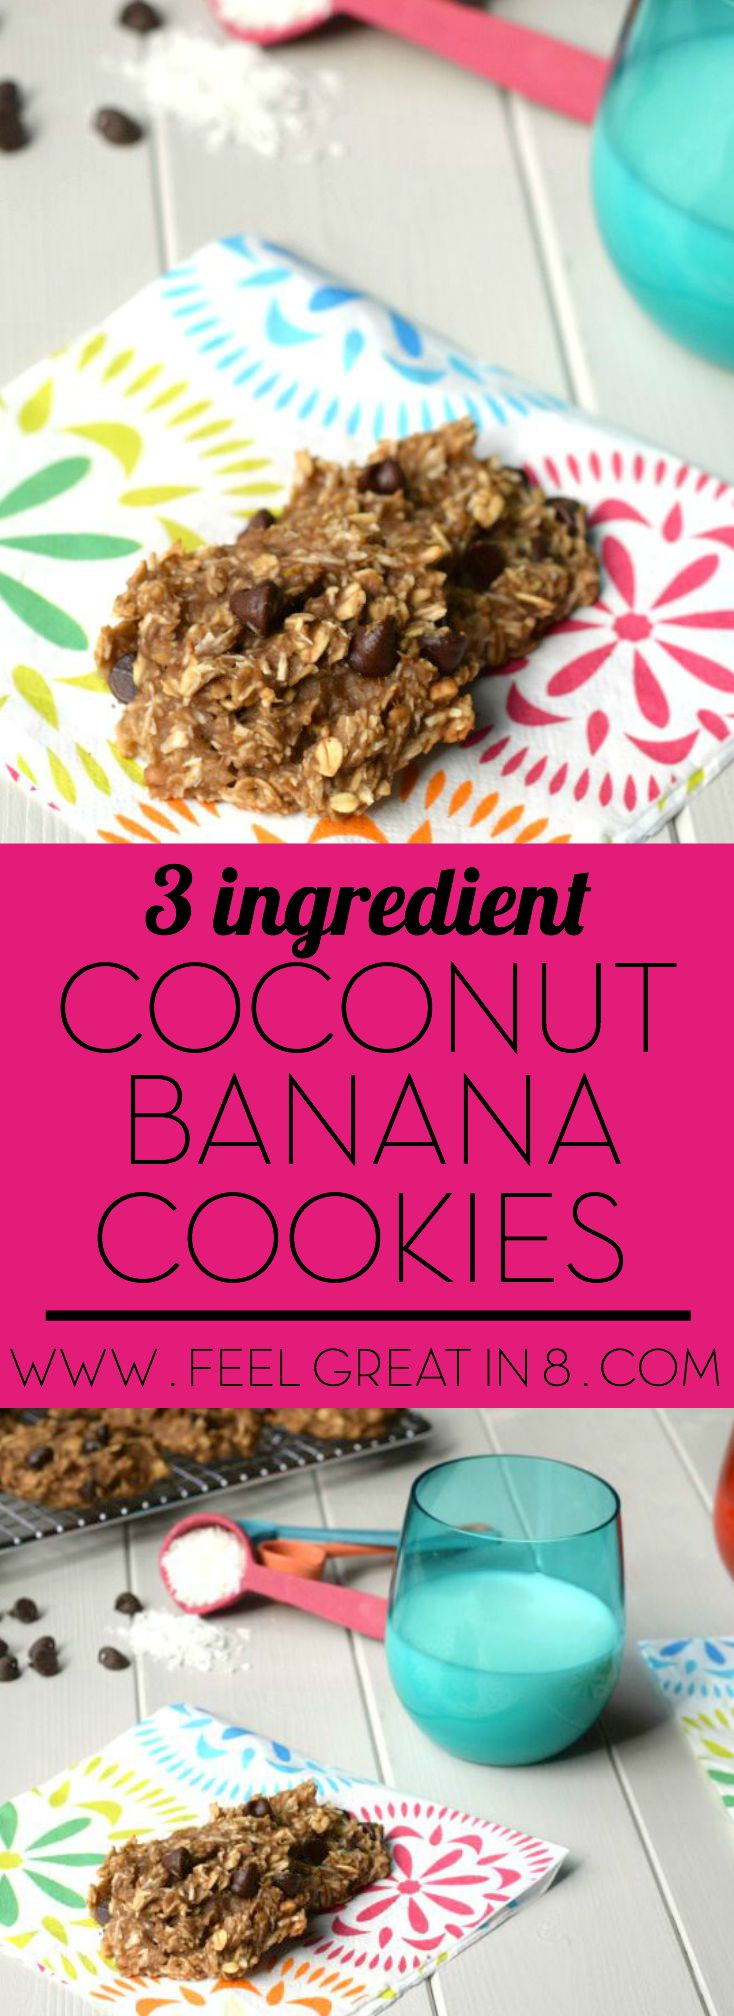 You only need 3 healthy real food ingredients to make these yummy {gluten free, sugar free, dairy free} 3 Ingredient Coconut Banana Cookies. So healthy, they are even perfect for breakfast or an after school snack!